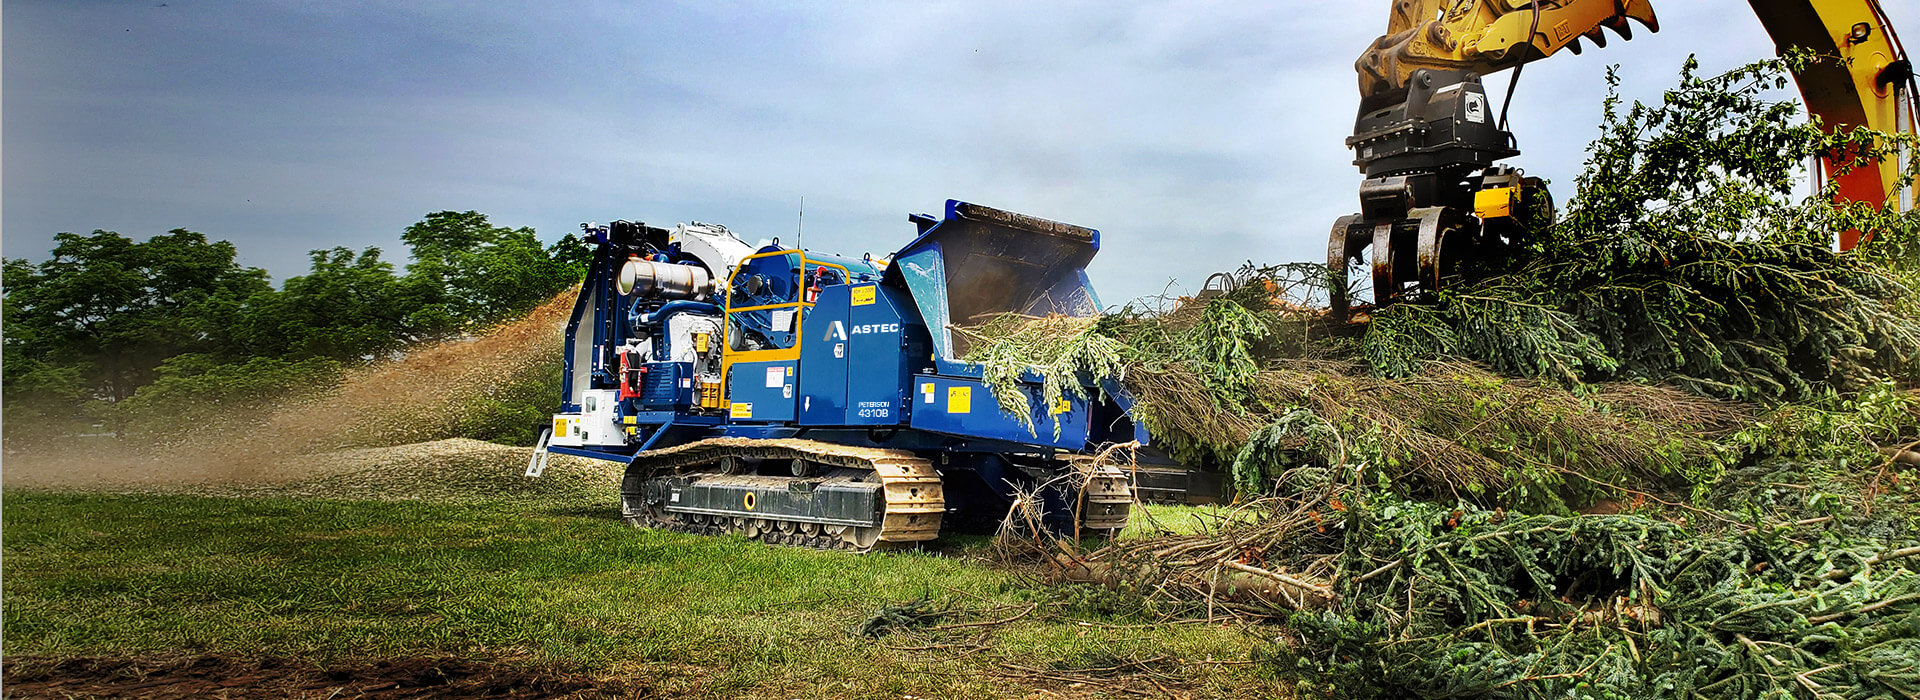 Peterson 4310B Drum Chipper chipping whole trees making microchips and being loaded by a grapple excavator